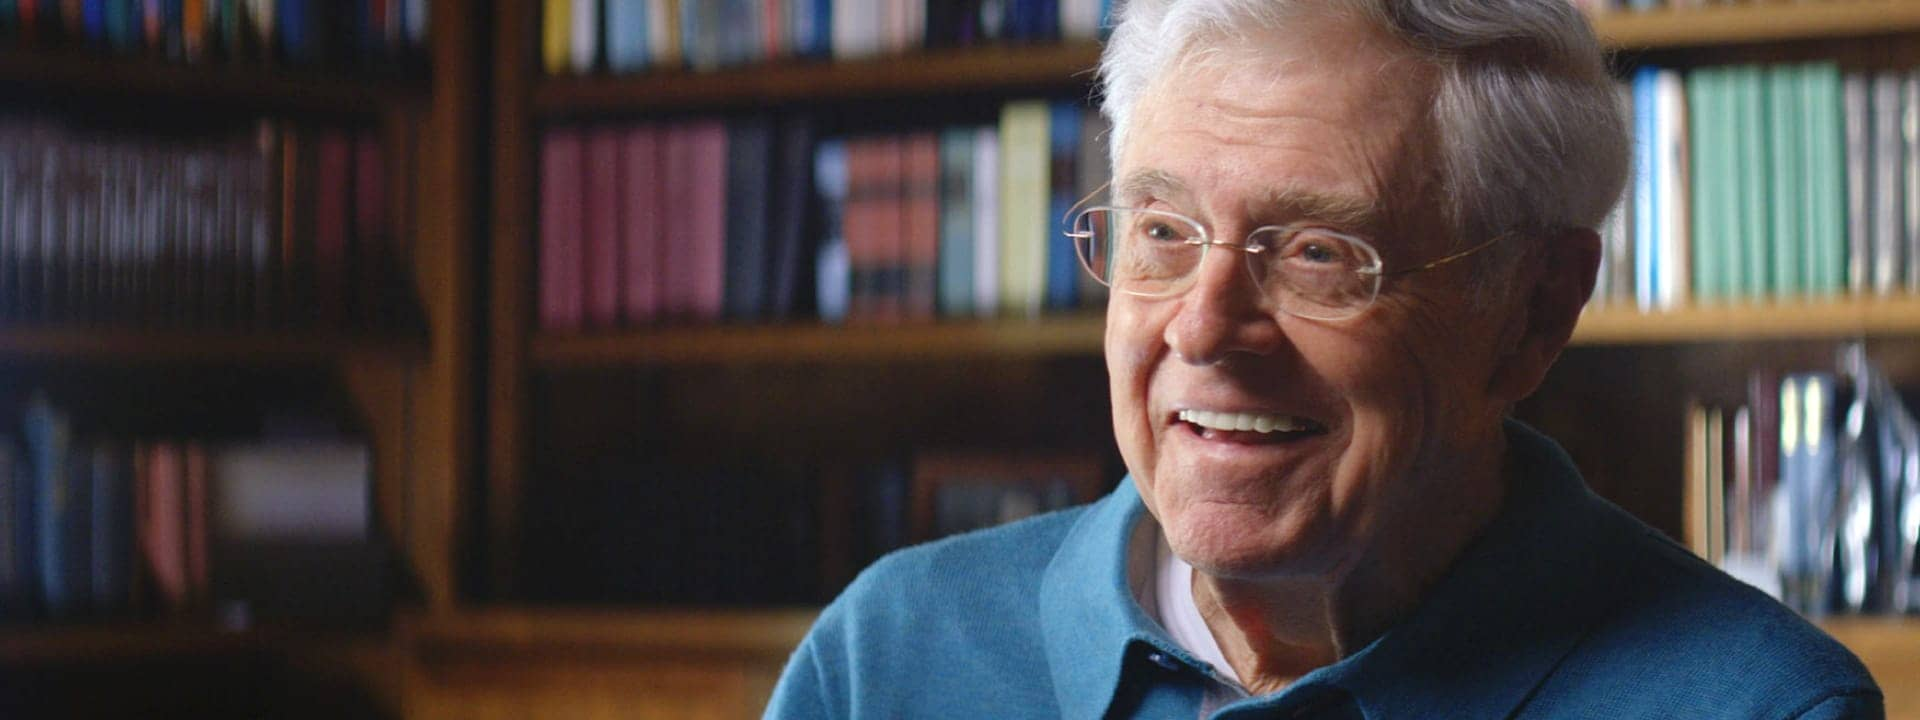 Charles Koch in front of a book shelf